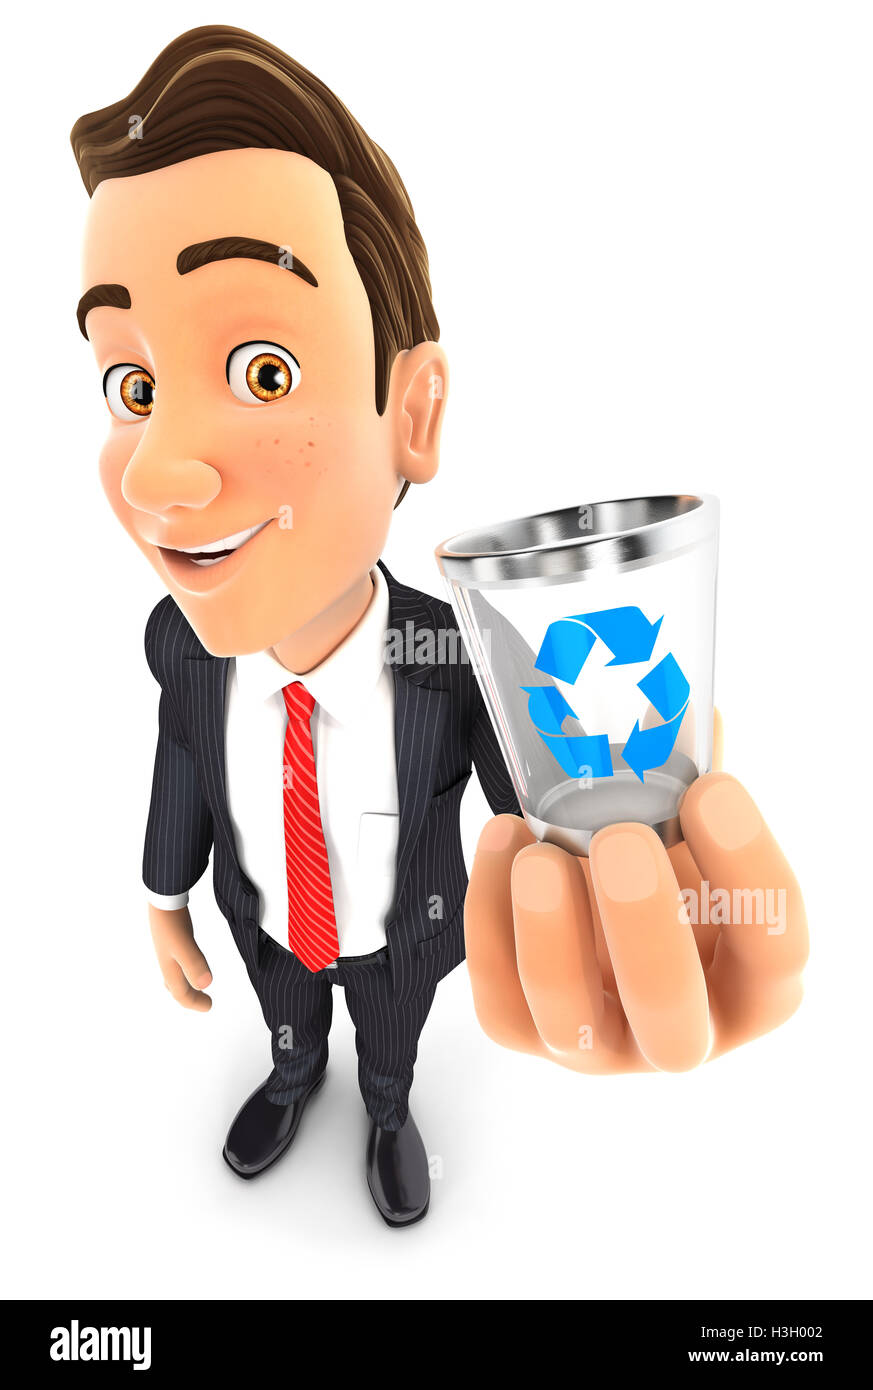 3d businessman holding trash can icon, illustration with isolated white background Stock Photo